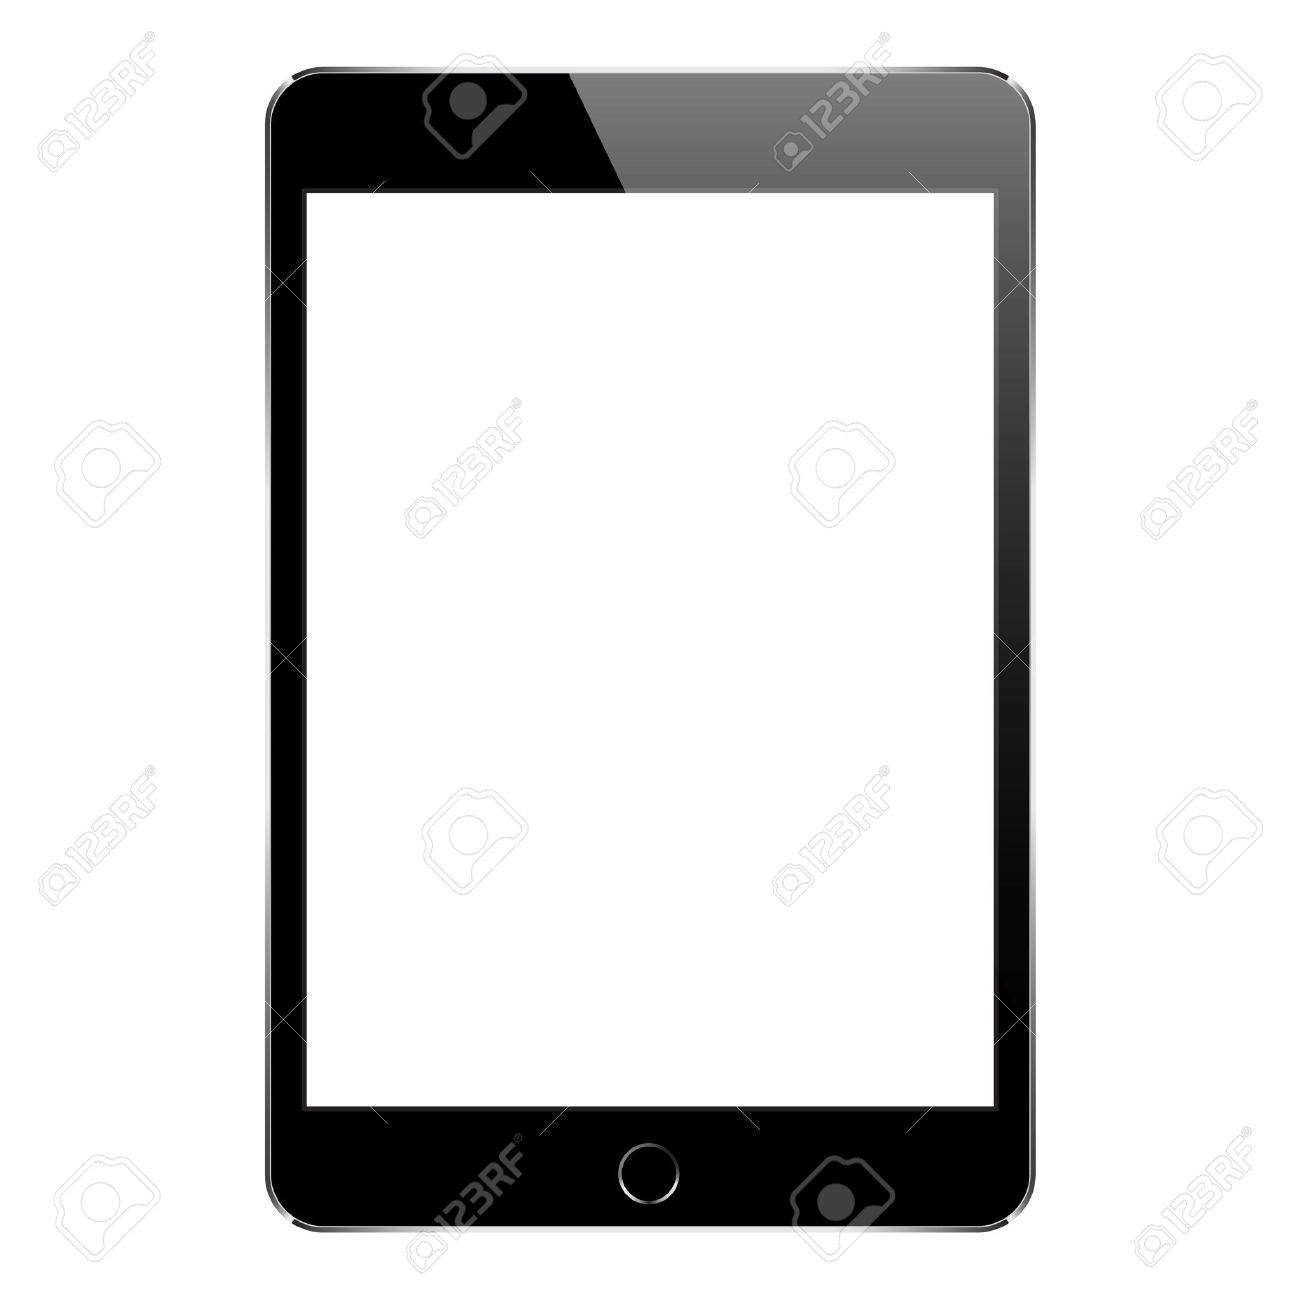 mock up black tablet isolated on white vector design - 54282632